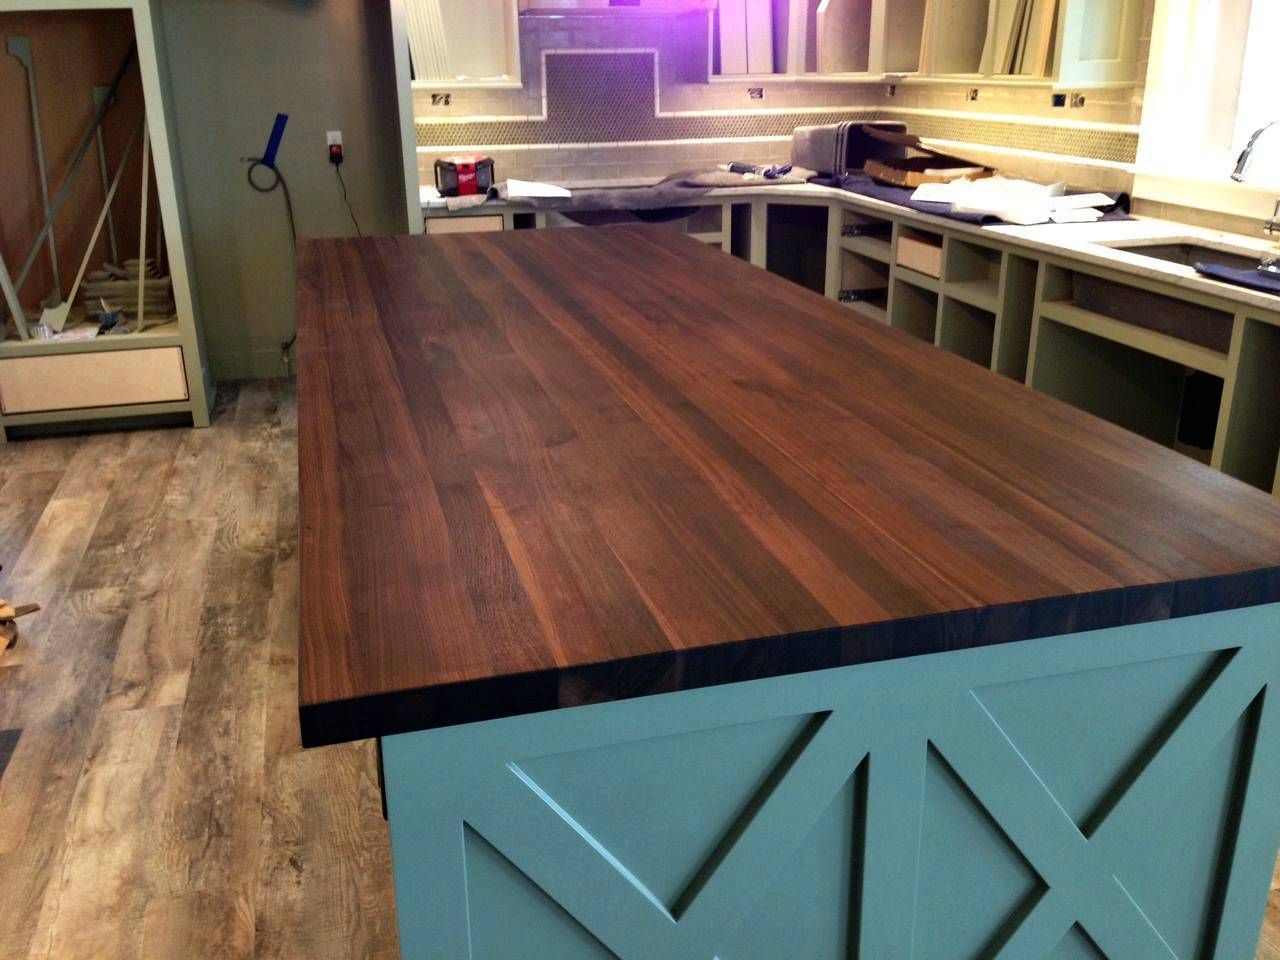 Etonnant Image Of: Fake Butcher Block Countertop (like The Cabinet Color)